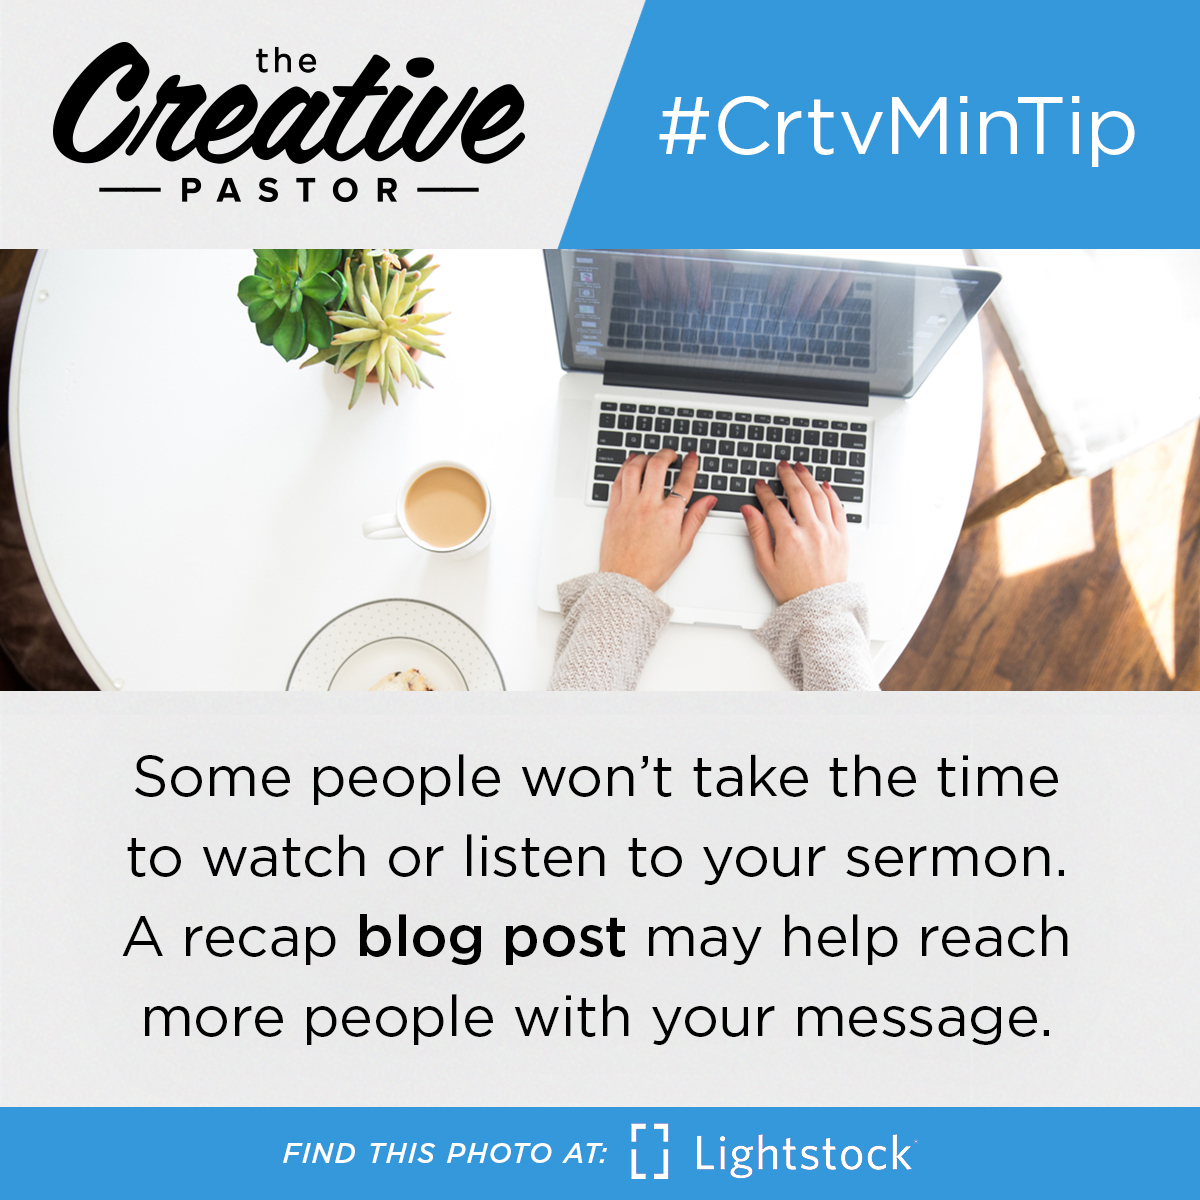 Some people won't take the time to watch or listen to your sermon. A recap blog post may help reach more people with your message.